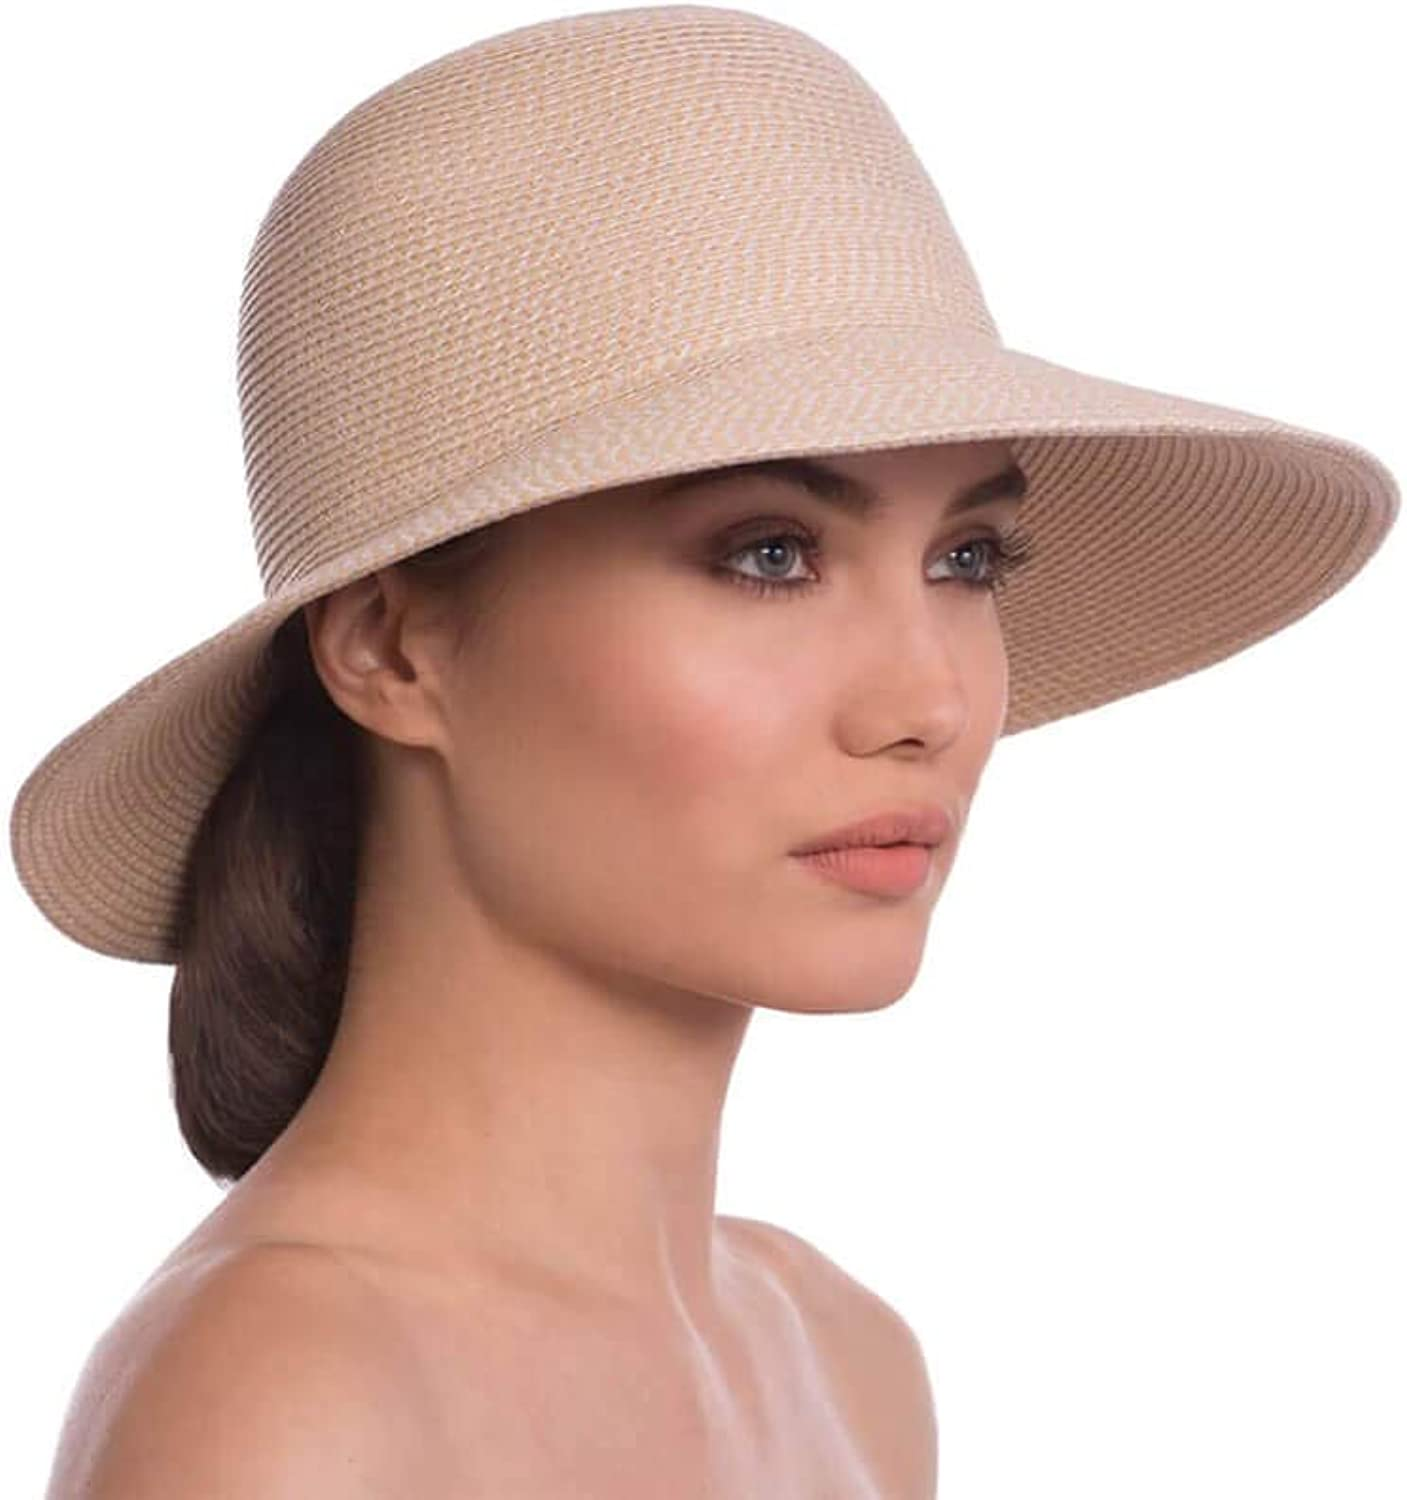 Eric Javits Luxury Designer Women's Headwear Hat  Squishee IV  Cream